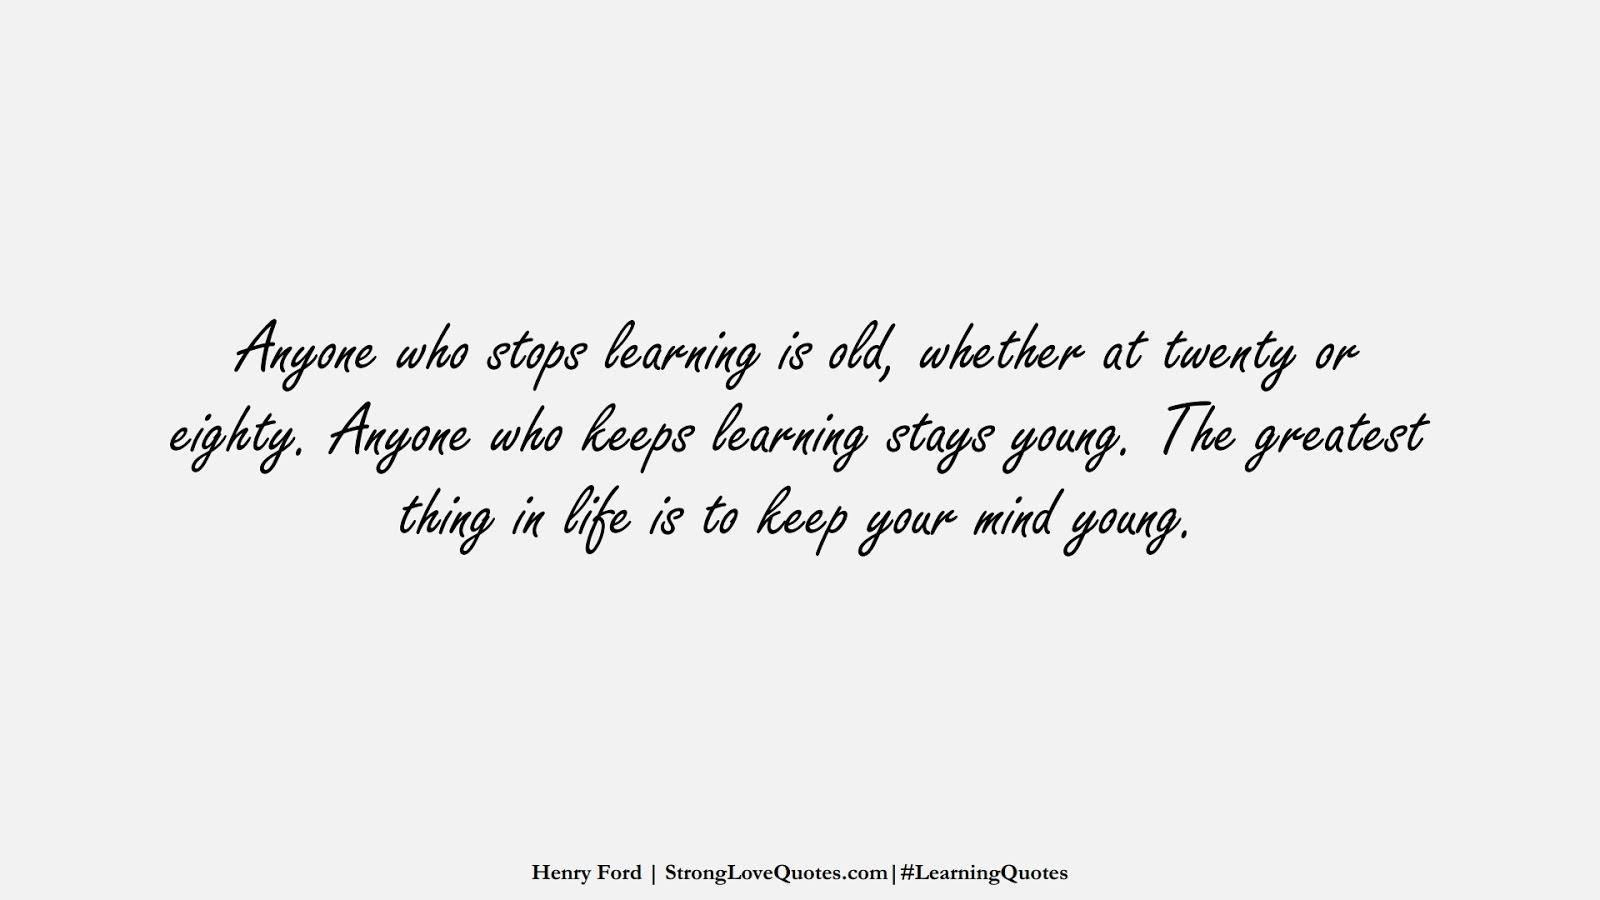 Anyone who stops learning is old, whether at twenty or eighty. Anyone who keeps learning stays young. The greatest thing in life is to keep your mind young. (Henry Ford);  #LearningQuotes